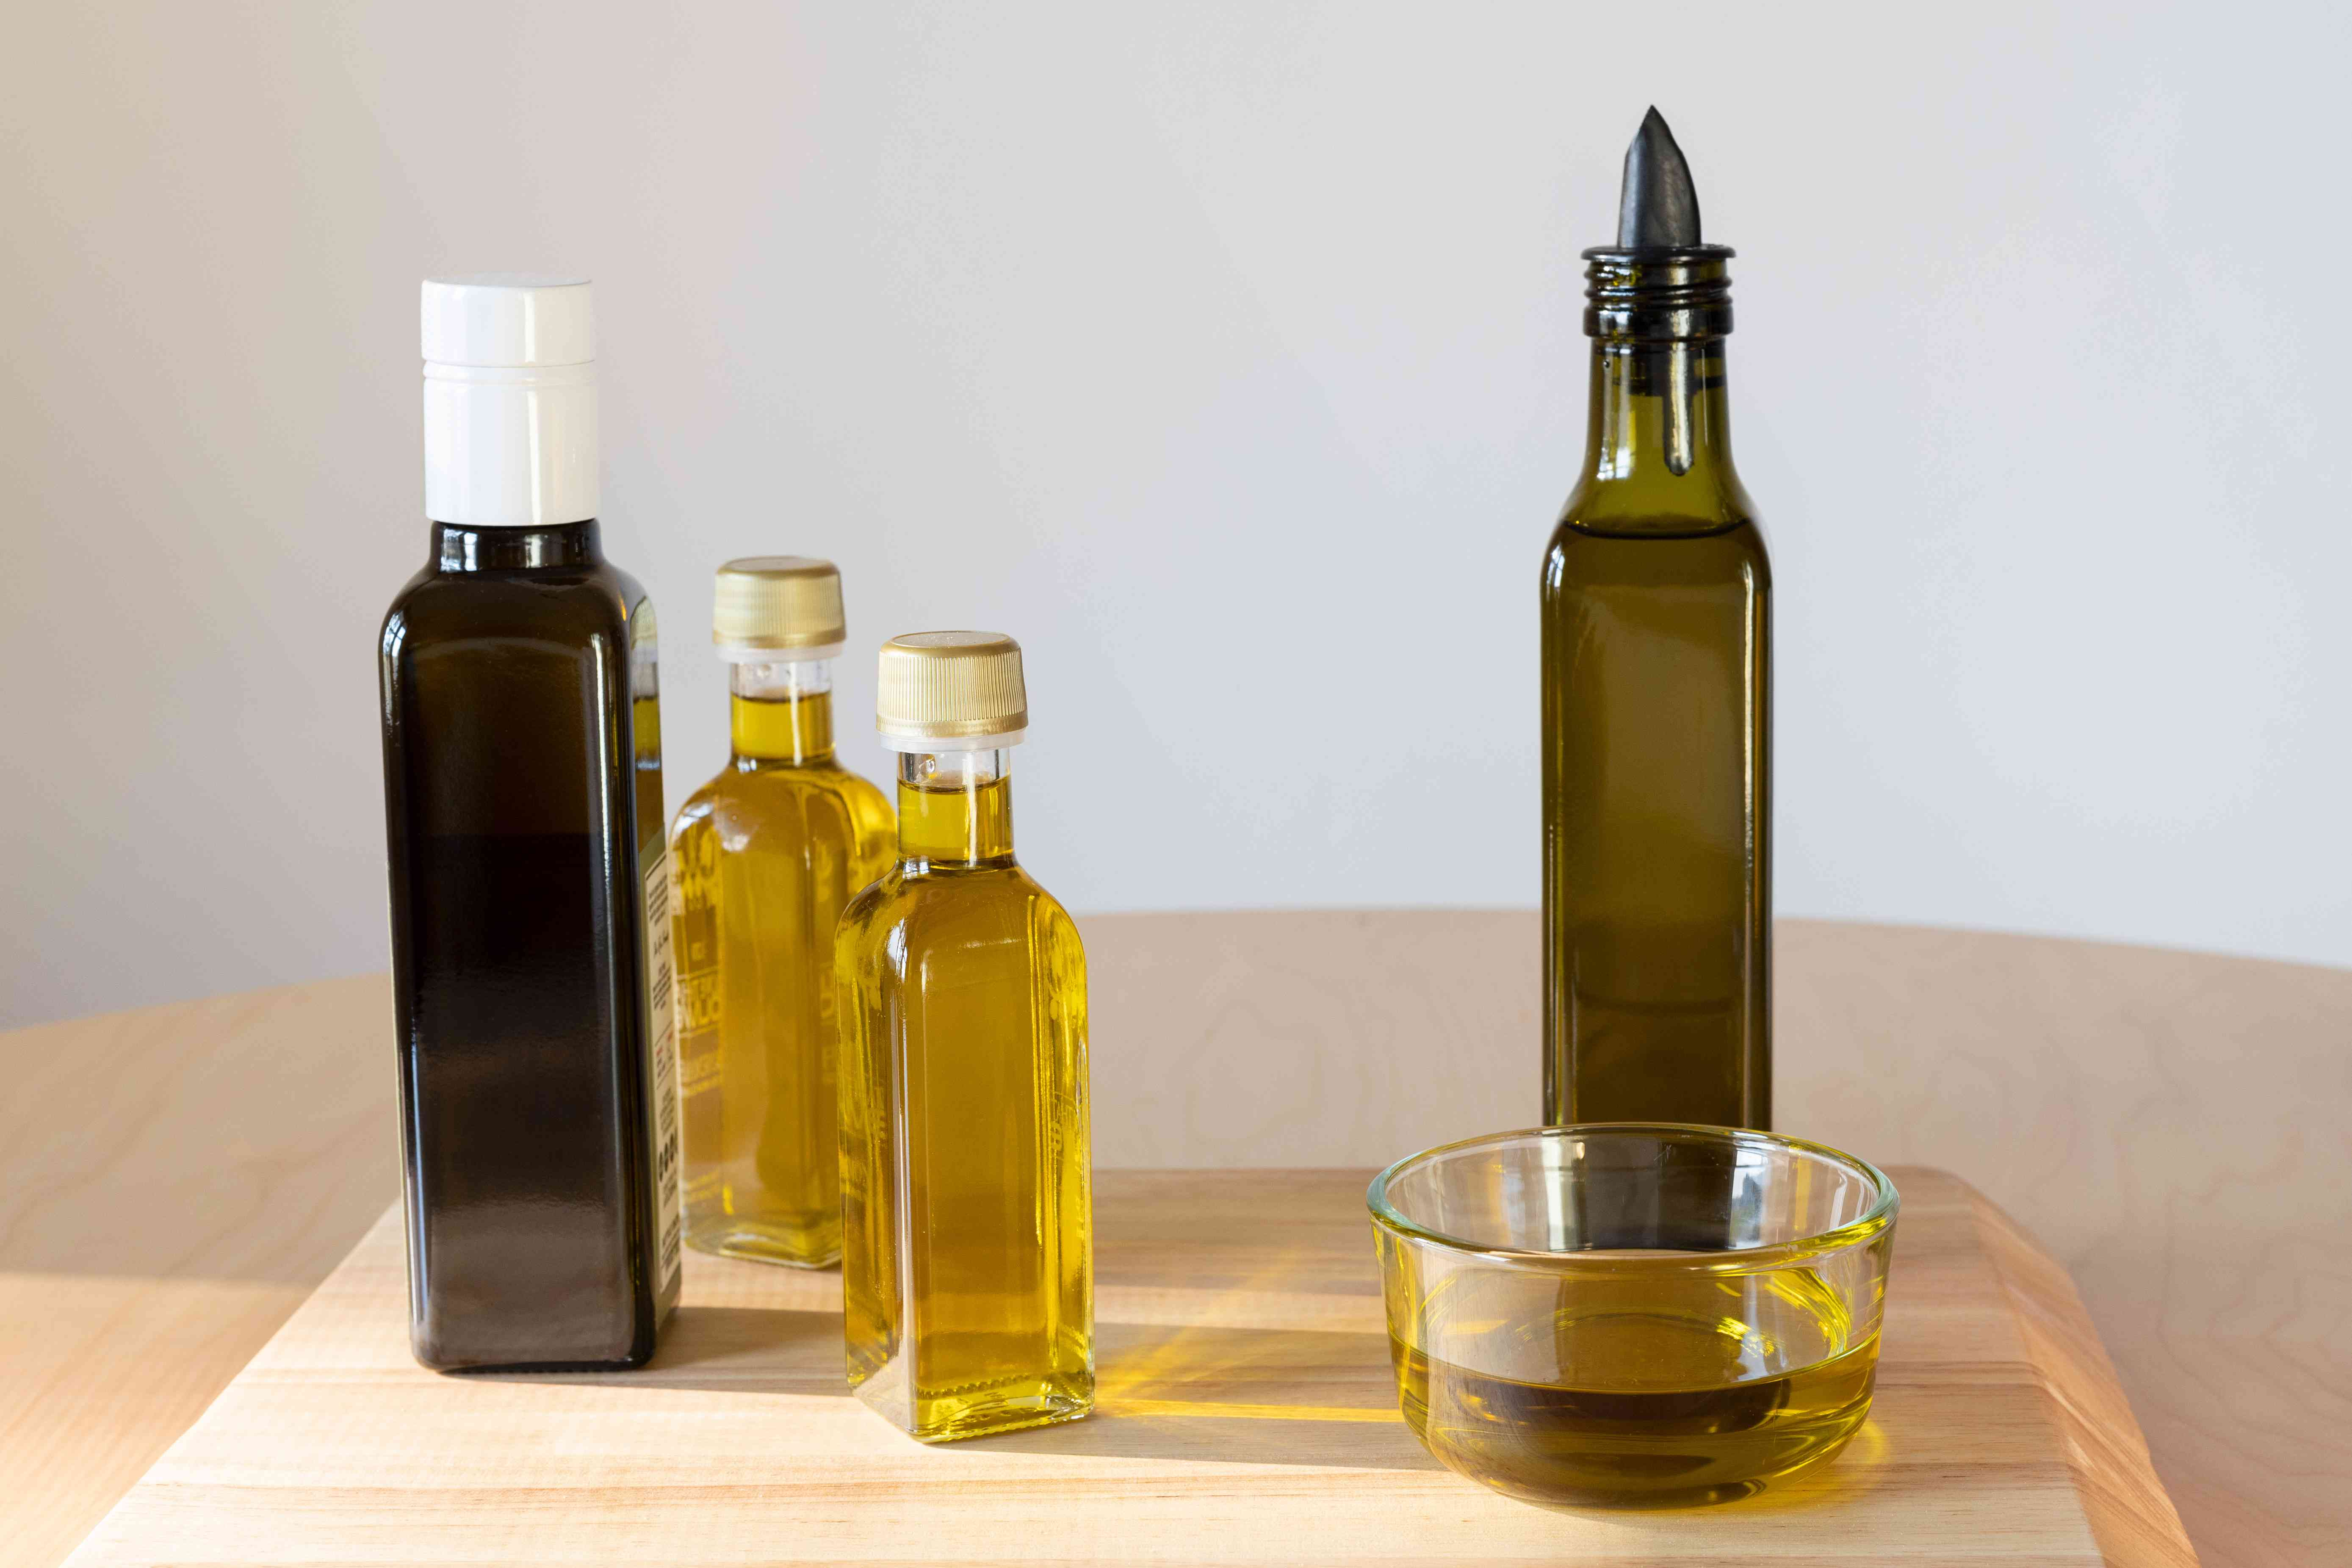 Vegetable oil in tall glass containers on wooden surface